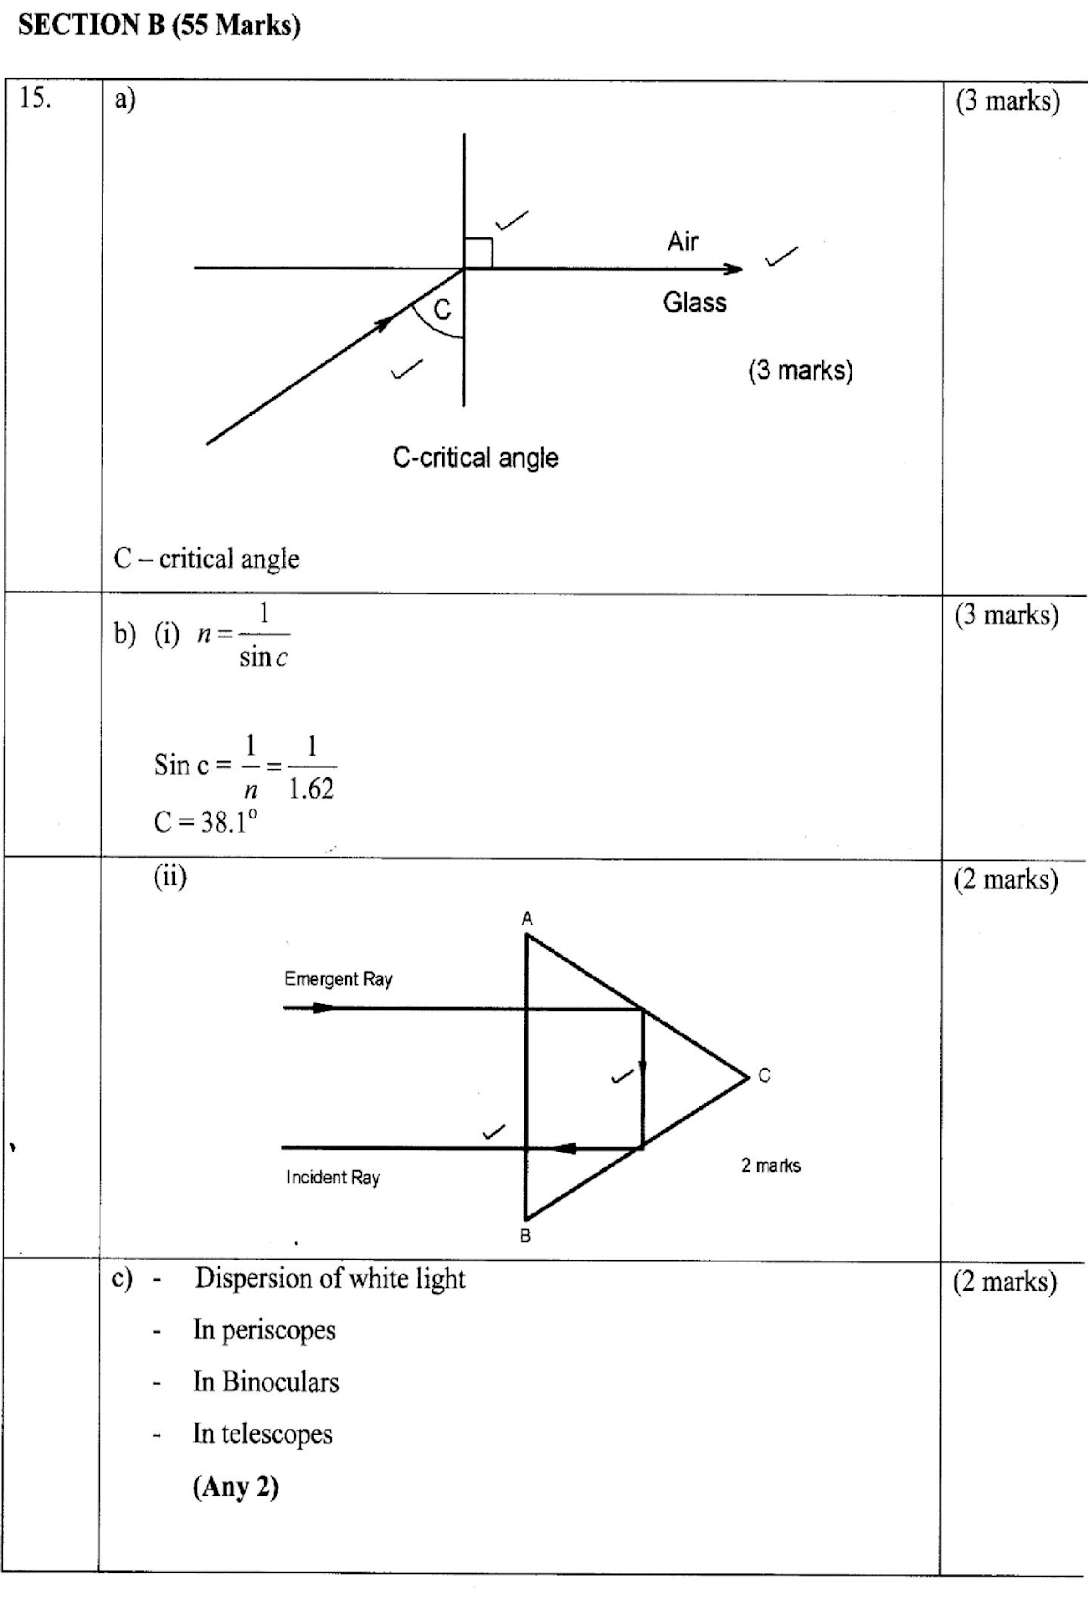 KCSE 2017 PHYSICS PAPER 2 MARKING SCHEME ~ ICT and Education